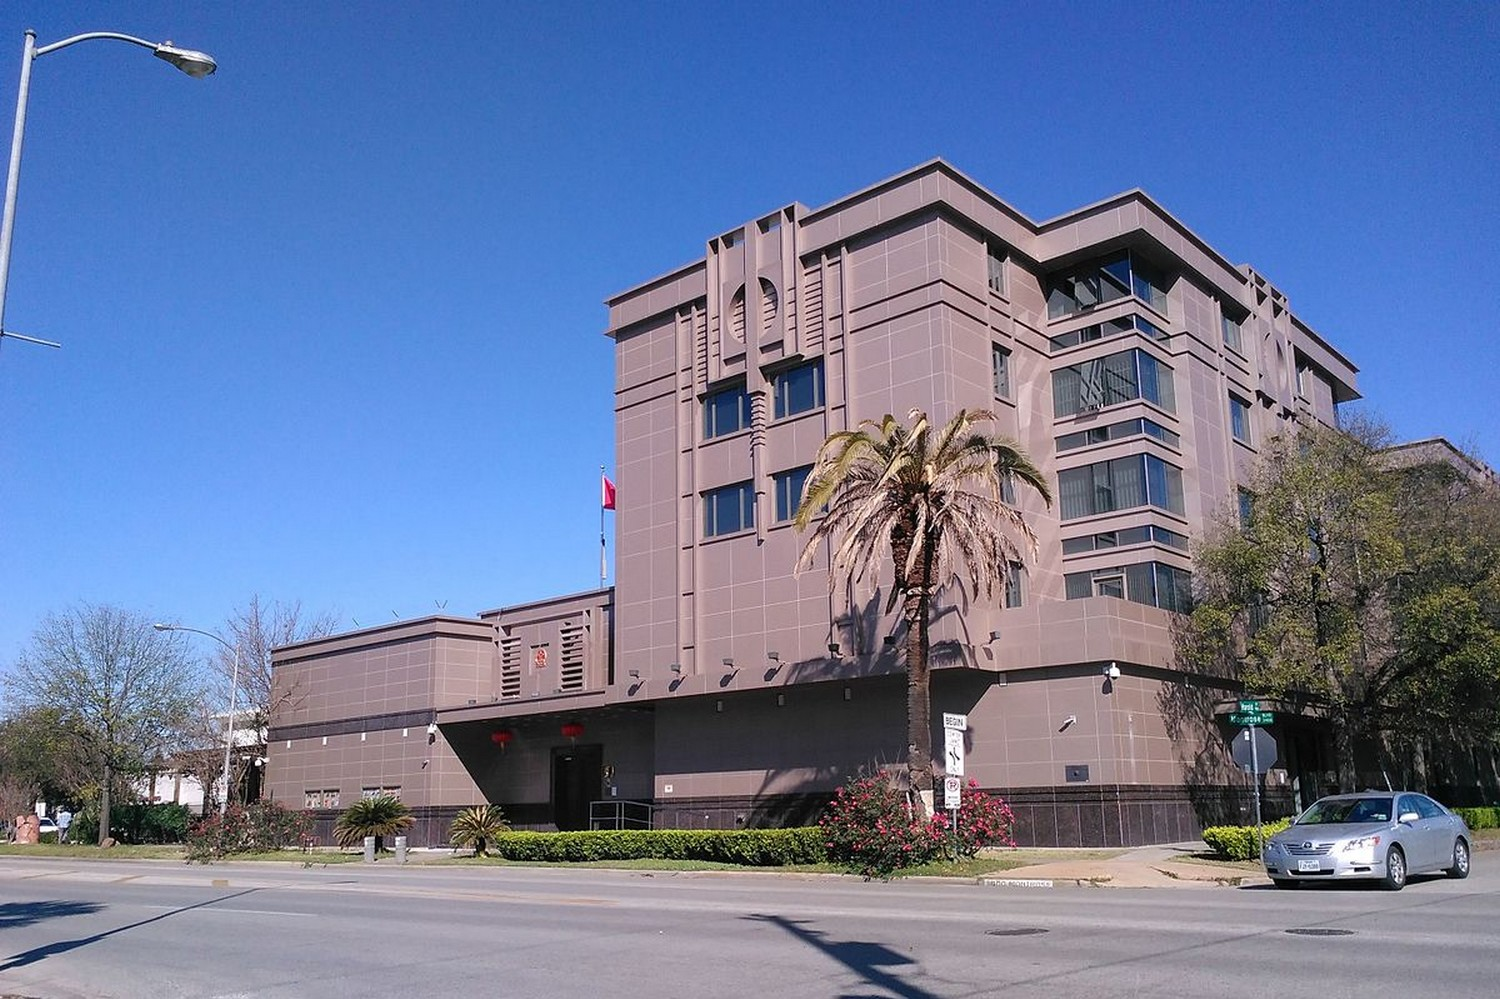 The Chinese consulate building in Houston. (Photo: Wiki commons)